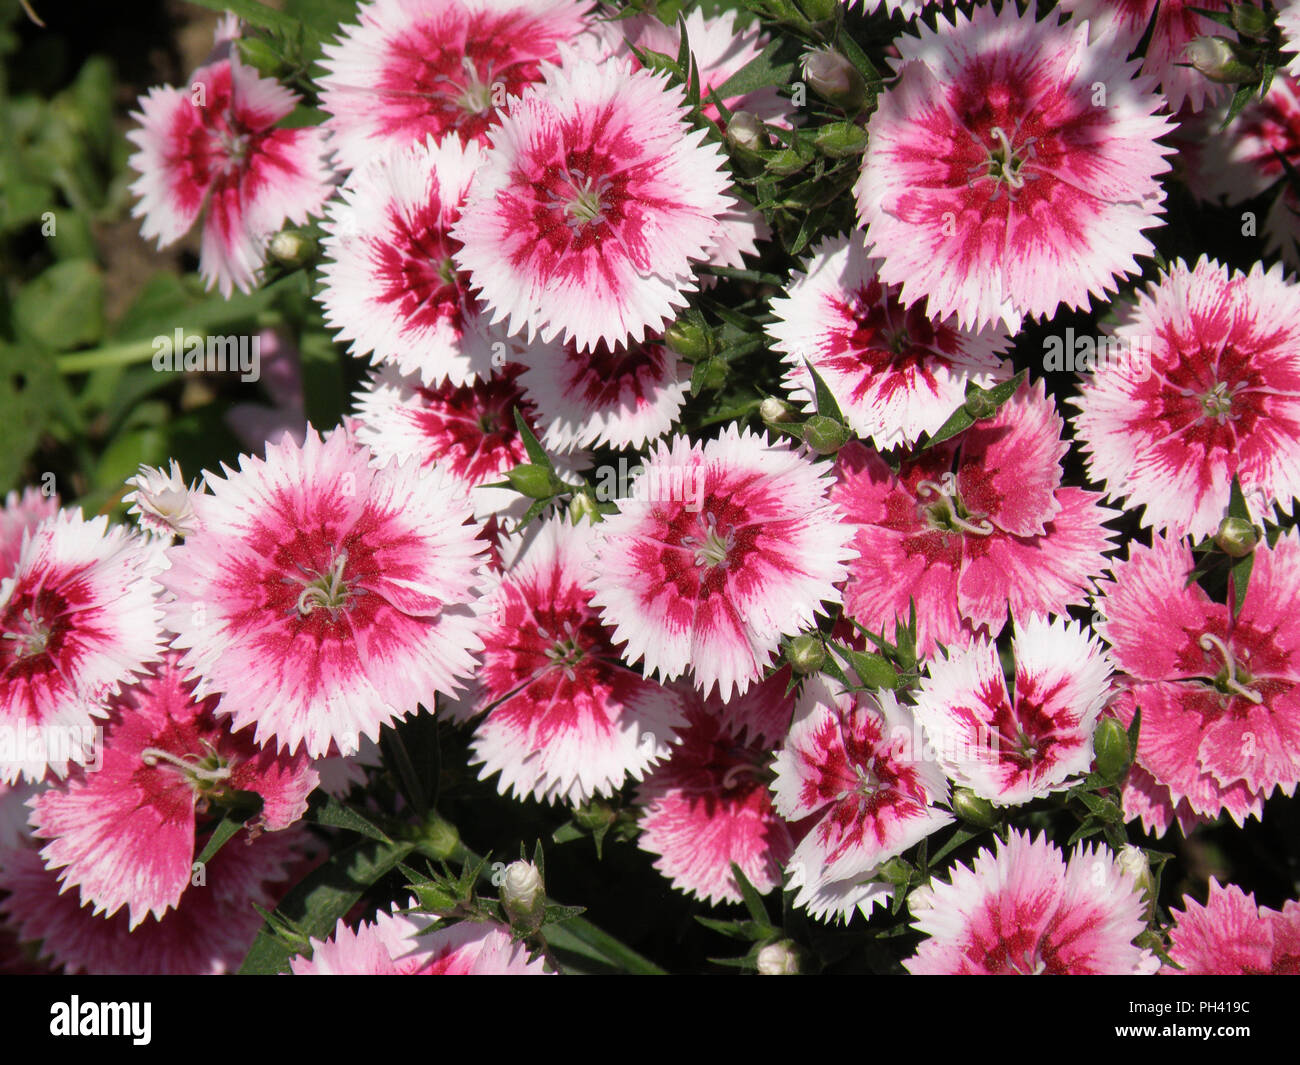 Garden With Flowering Pink And White Sweet William Flowers Blooming